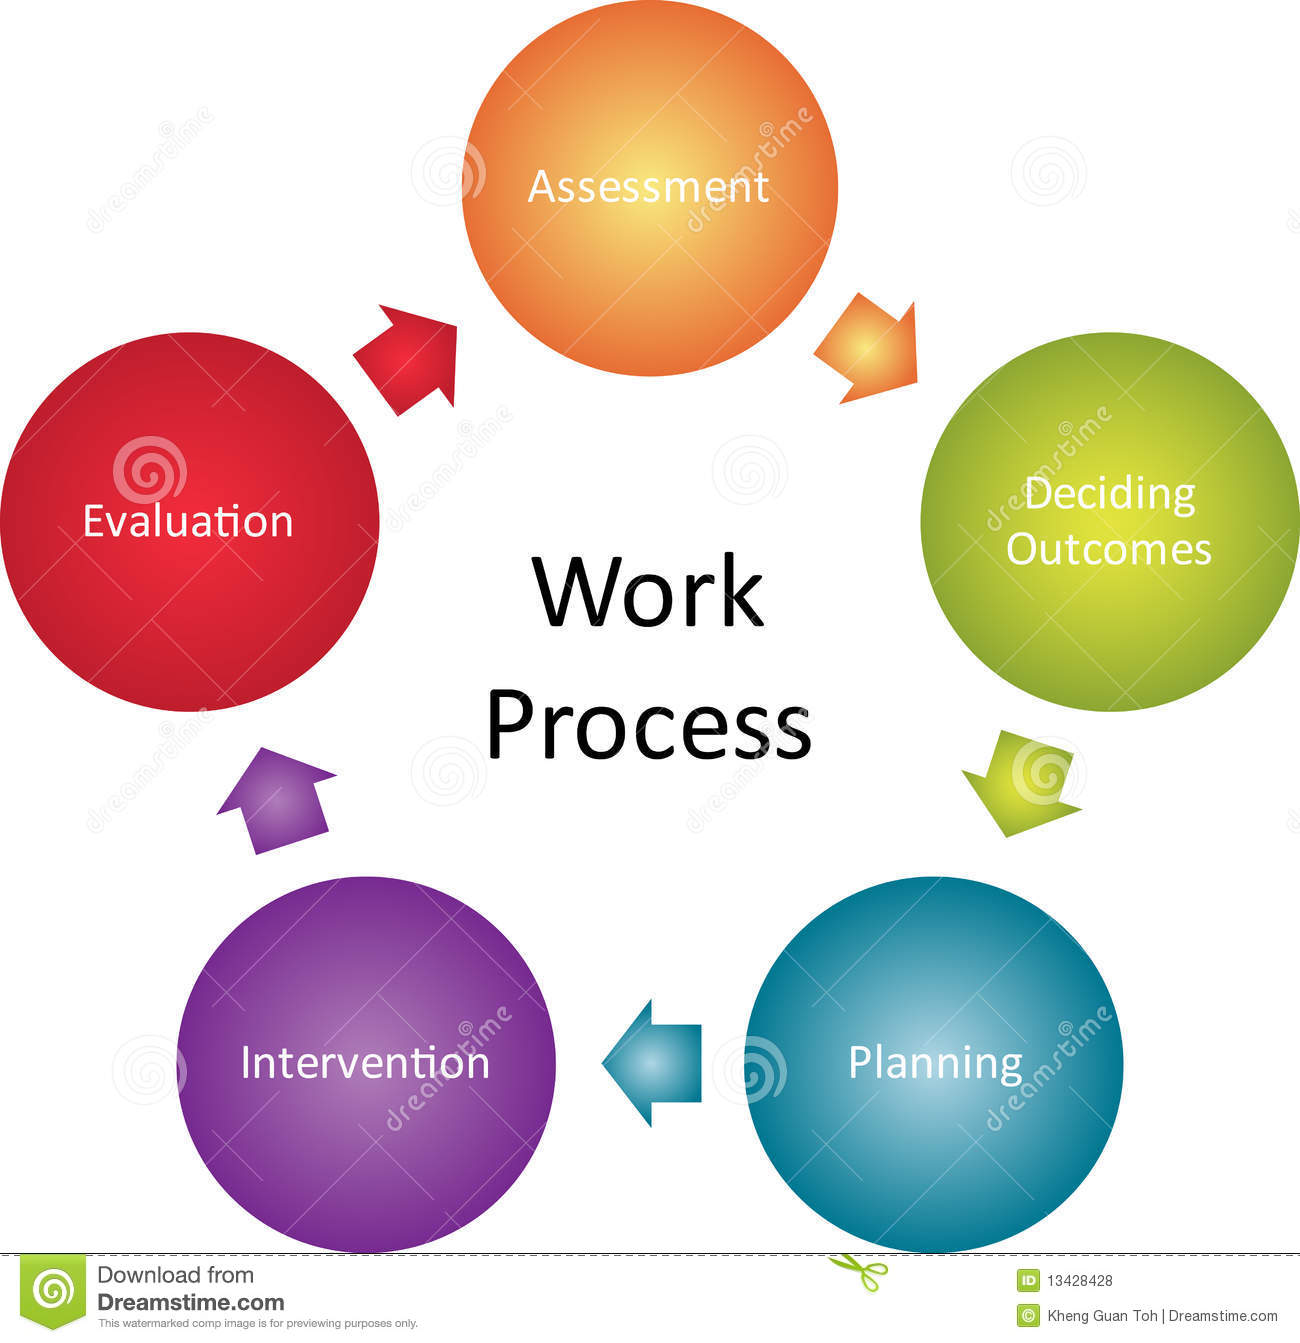 work-process-business-diagram-13428428.jpg